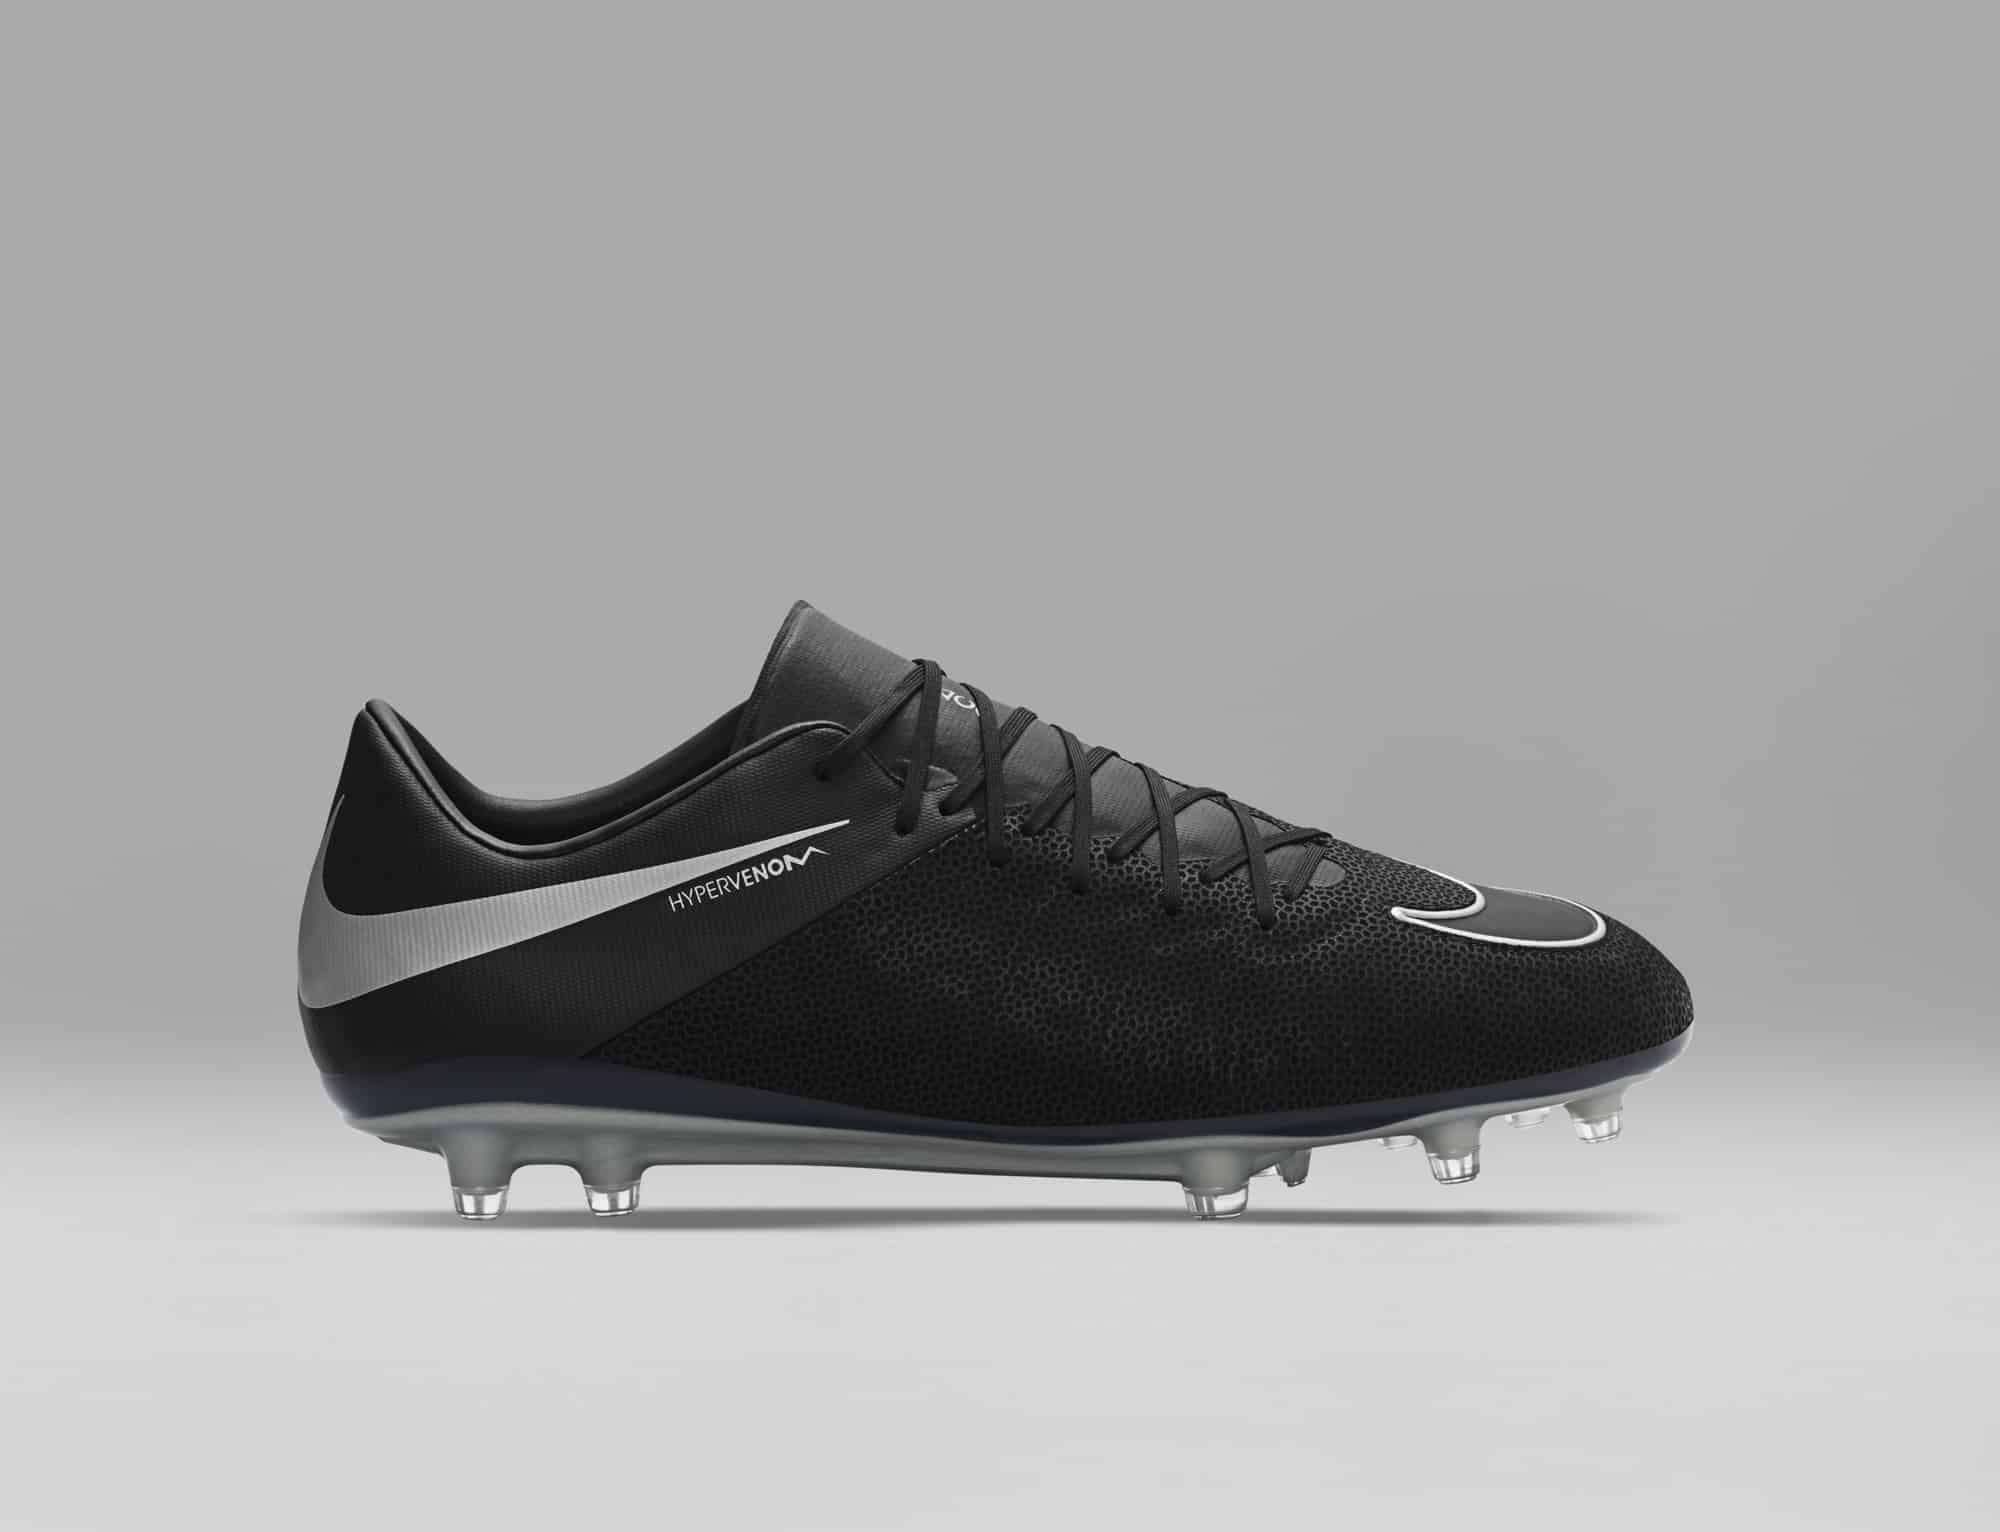 chaussures-football-nike-hypervenom-phinish-2-tech-craft-img3